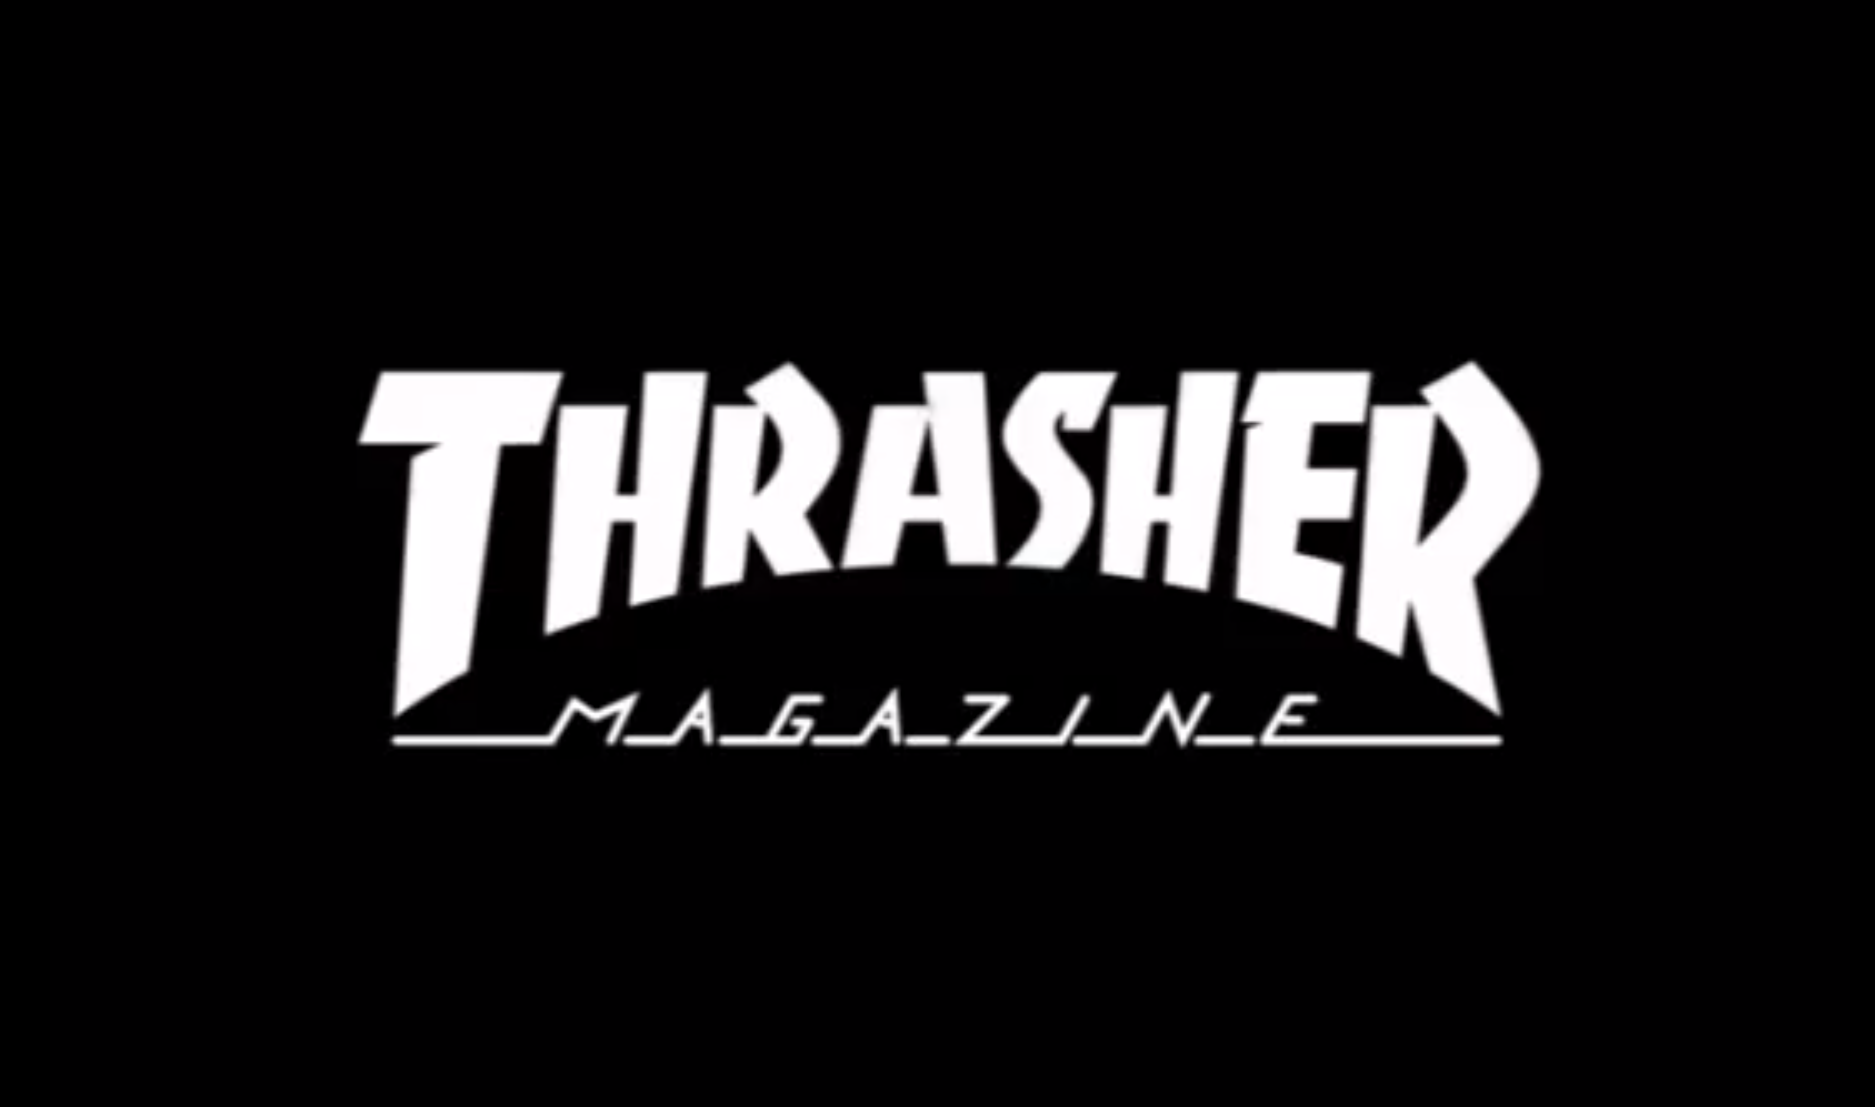 Thrasher Skate Goat Wallpaper